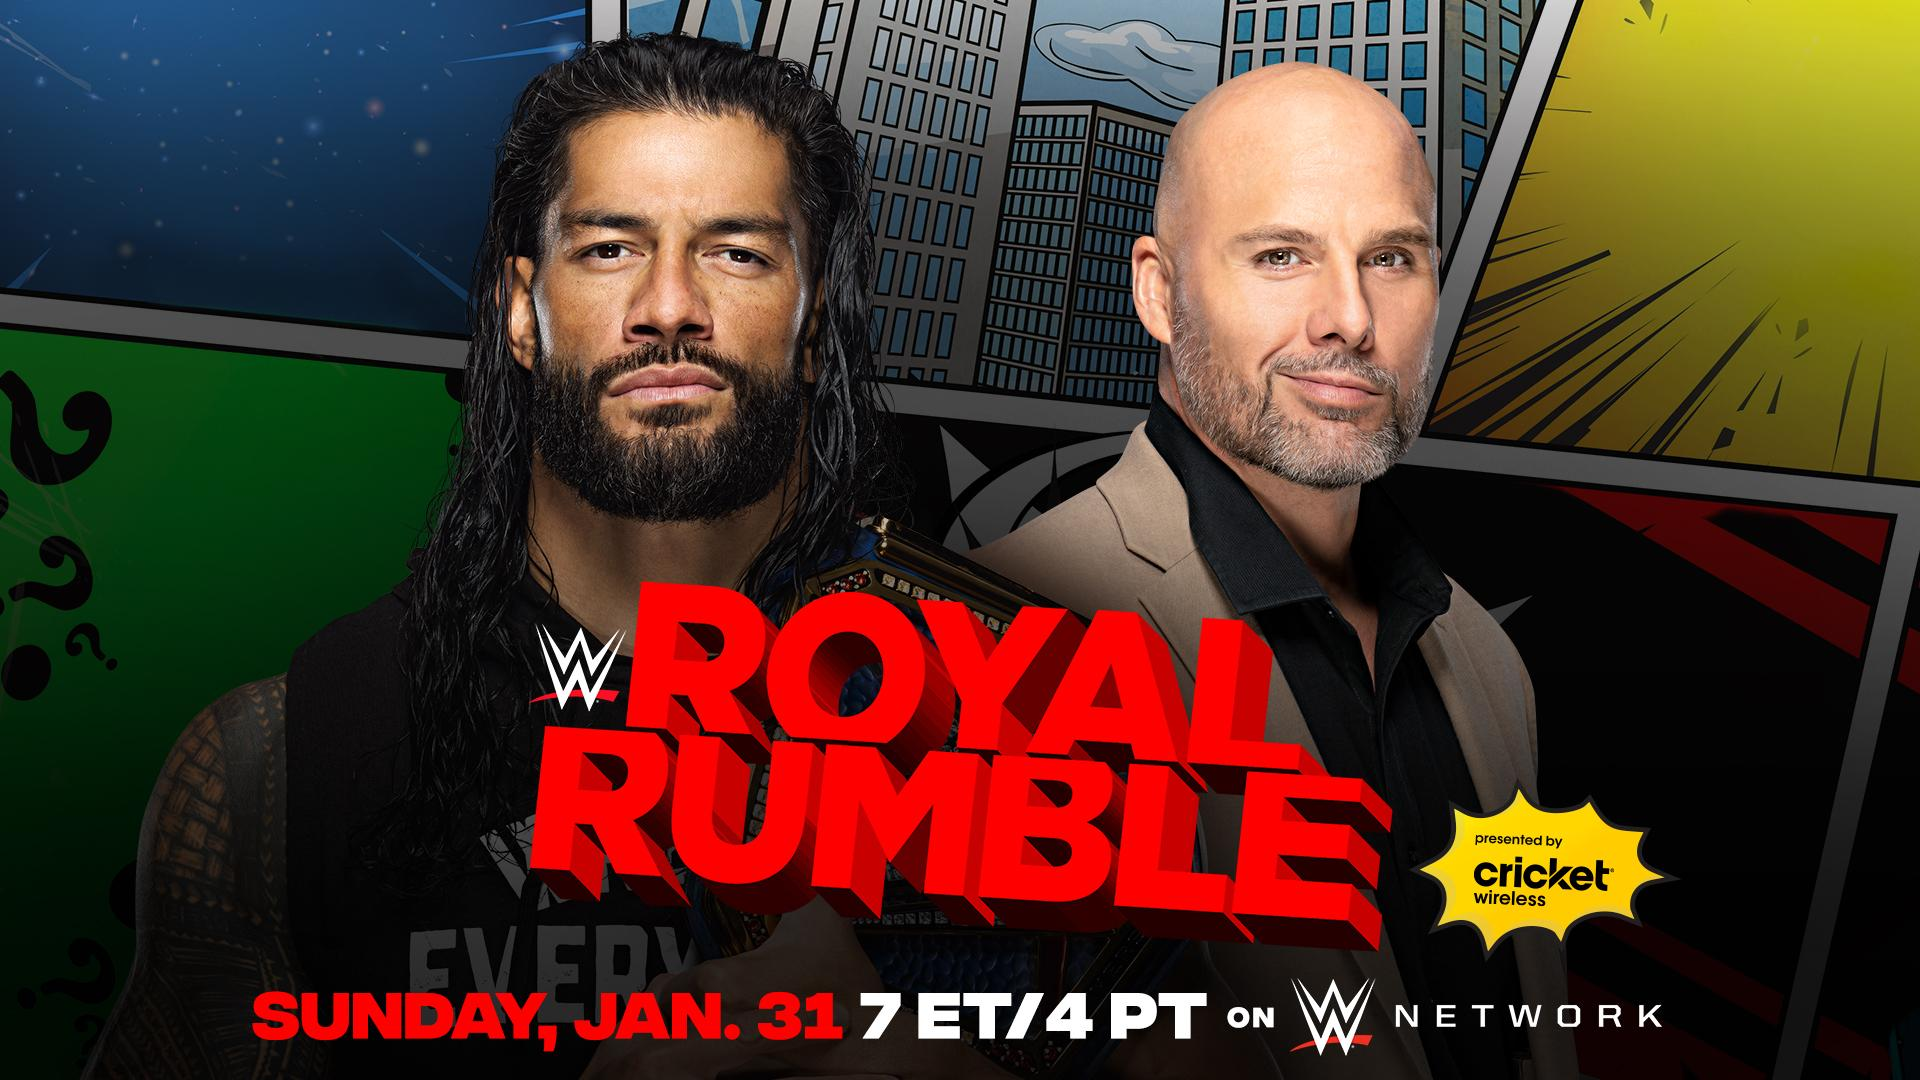 Current WWE Royal Rumble Card and Announced Participants – TPWW